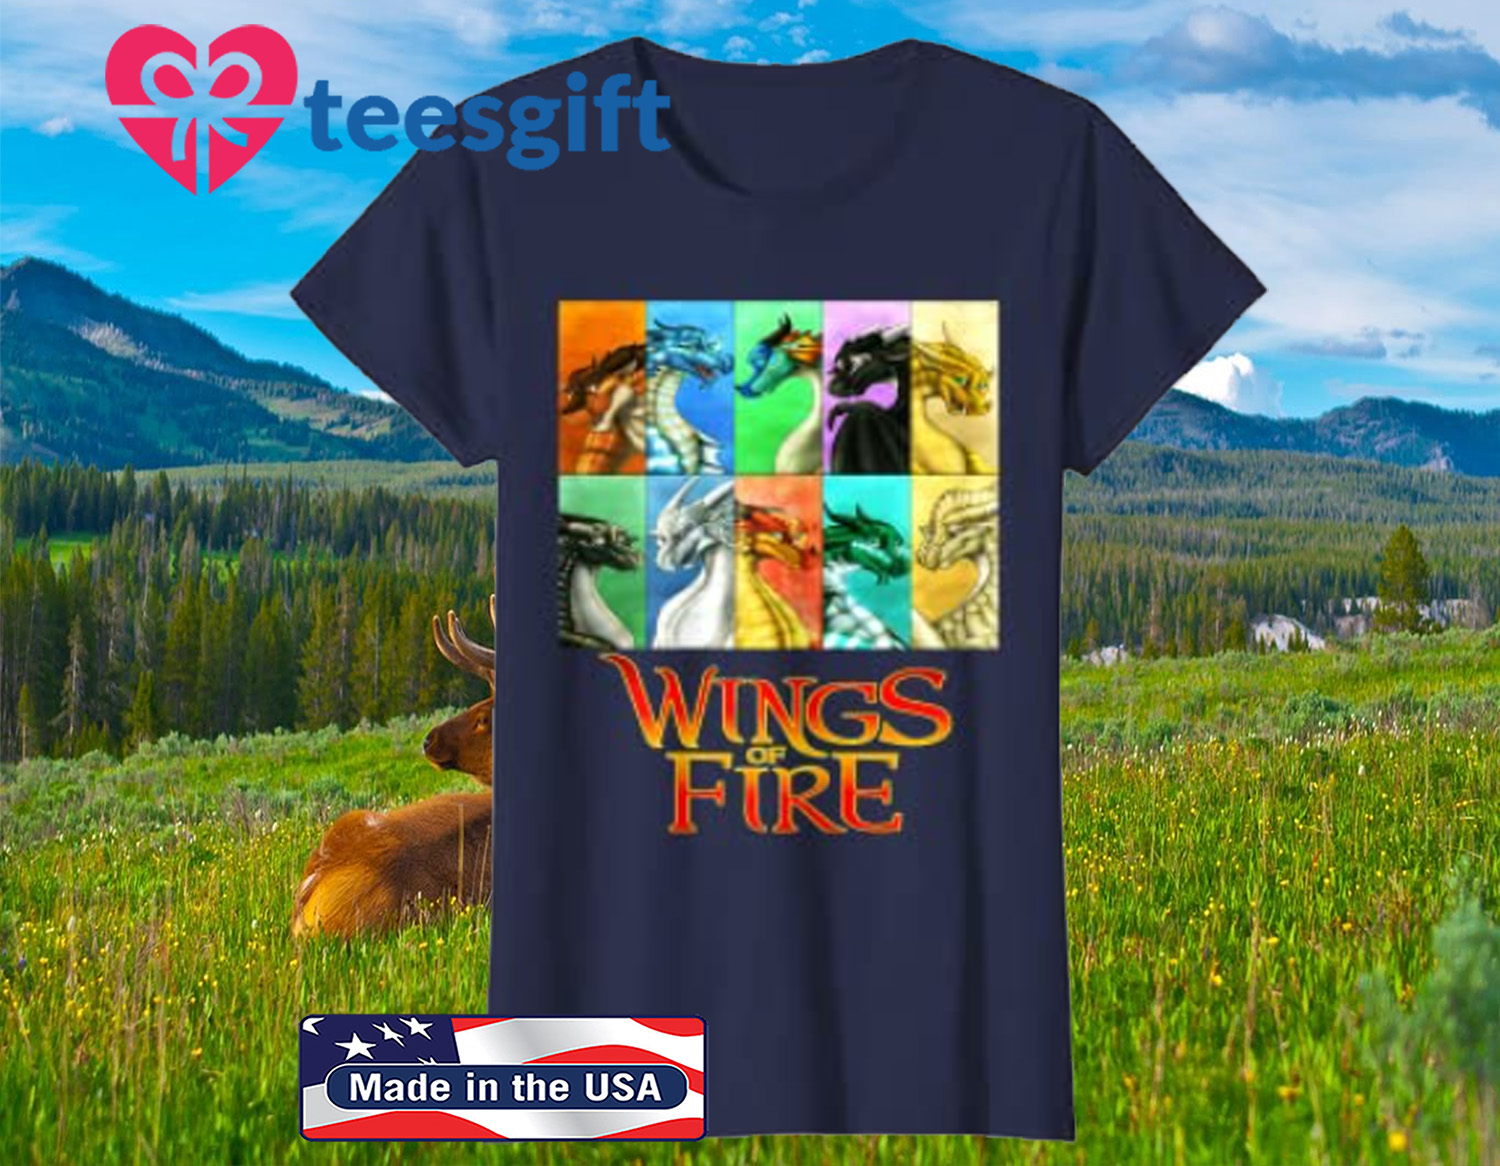 Wings Of Fire - All Together Men Women Kids Gift Shirt